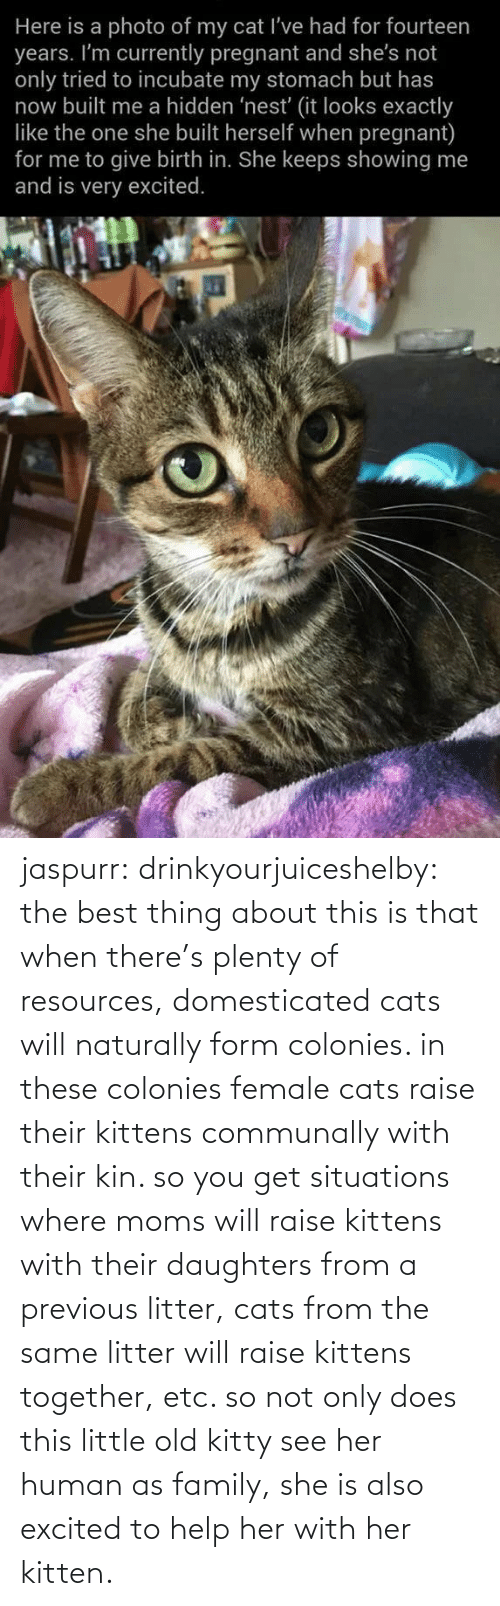 Help: jaspurr:  drinkyourjuiceshelby:    the best thing about this is that when there's plenty of resources, domesticated cats will naturally form colonies. in these colonies female cats raise their kittens communally with their kin. so you get situations where moms will raise kittens with their daughters from a previous litter, cats from the same litter will raise kittens together, etc. so not only does this little old kitty see her human as family, she is also excited to help her with her kitten.